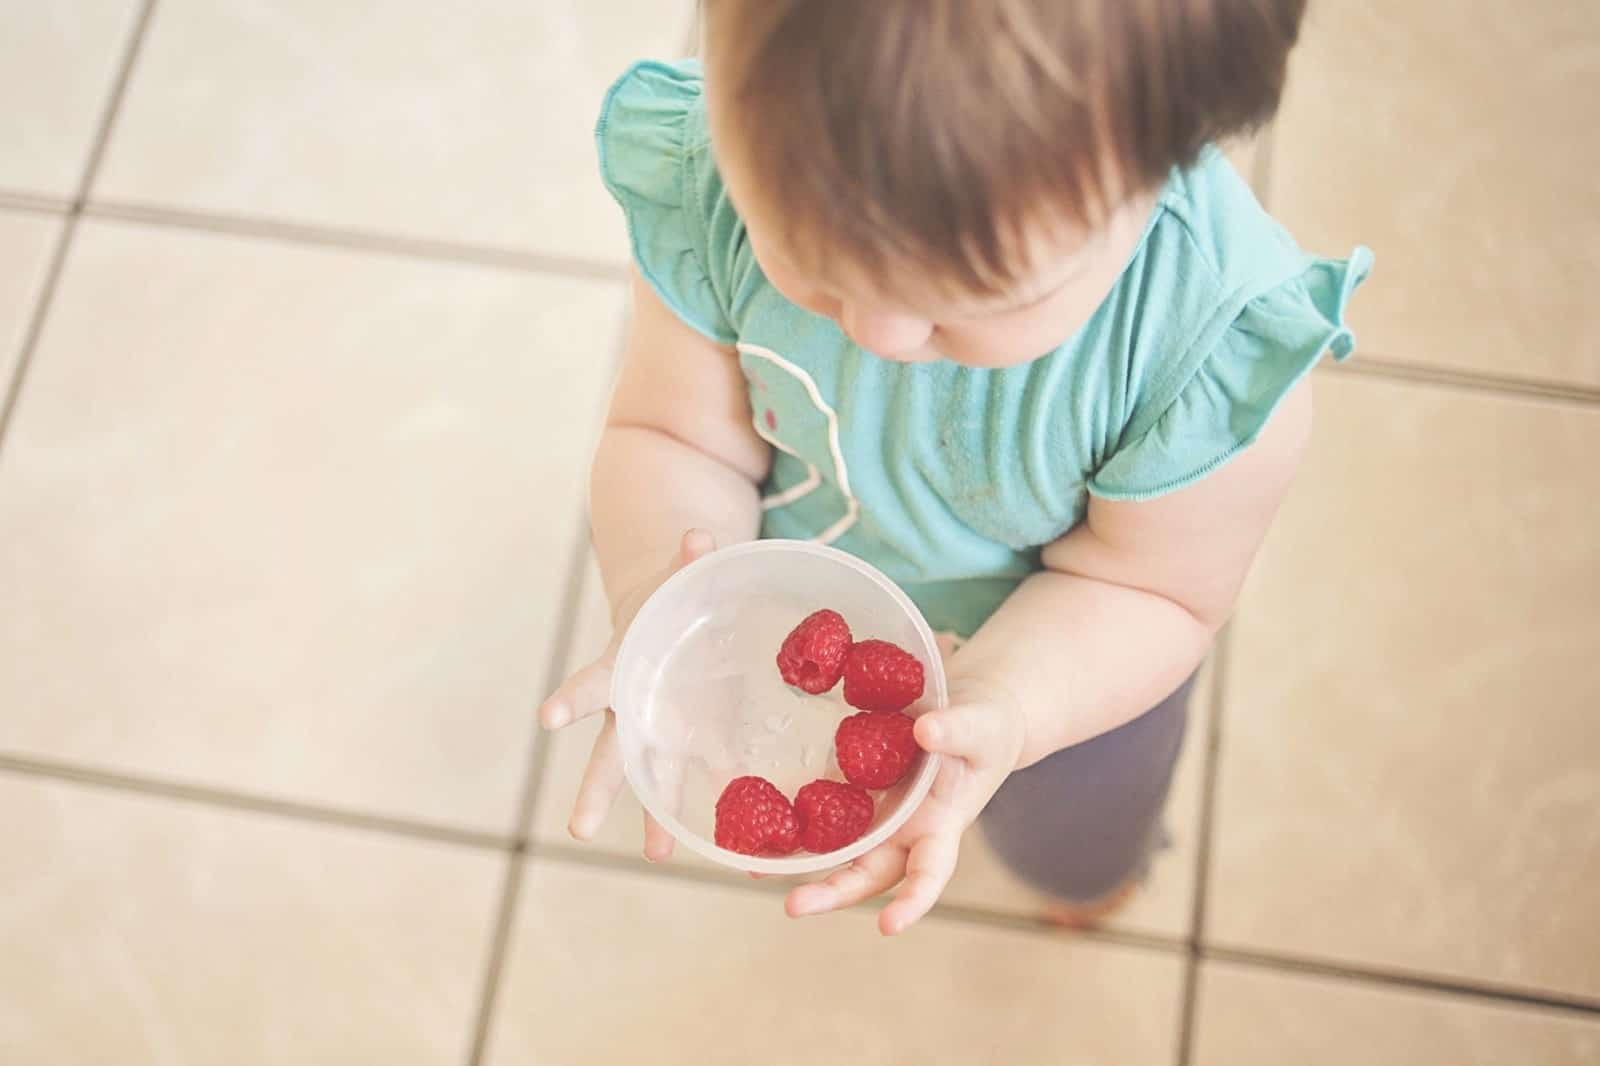 toddler holding berries